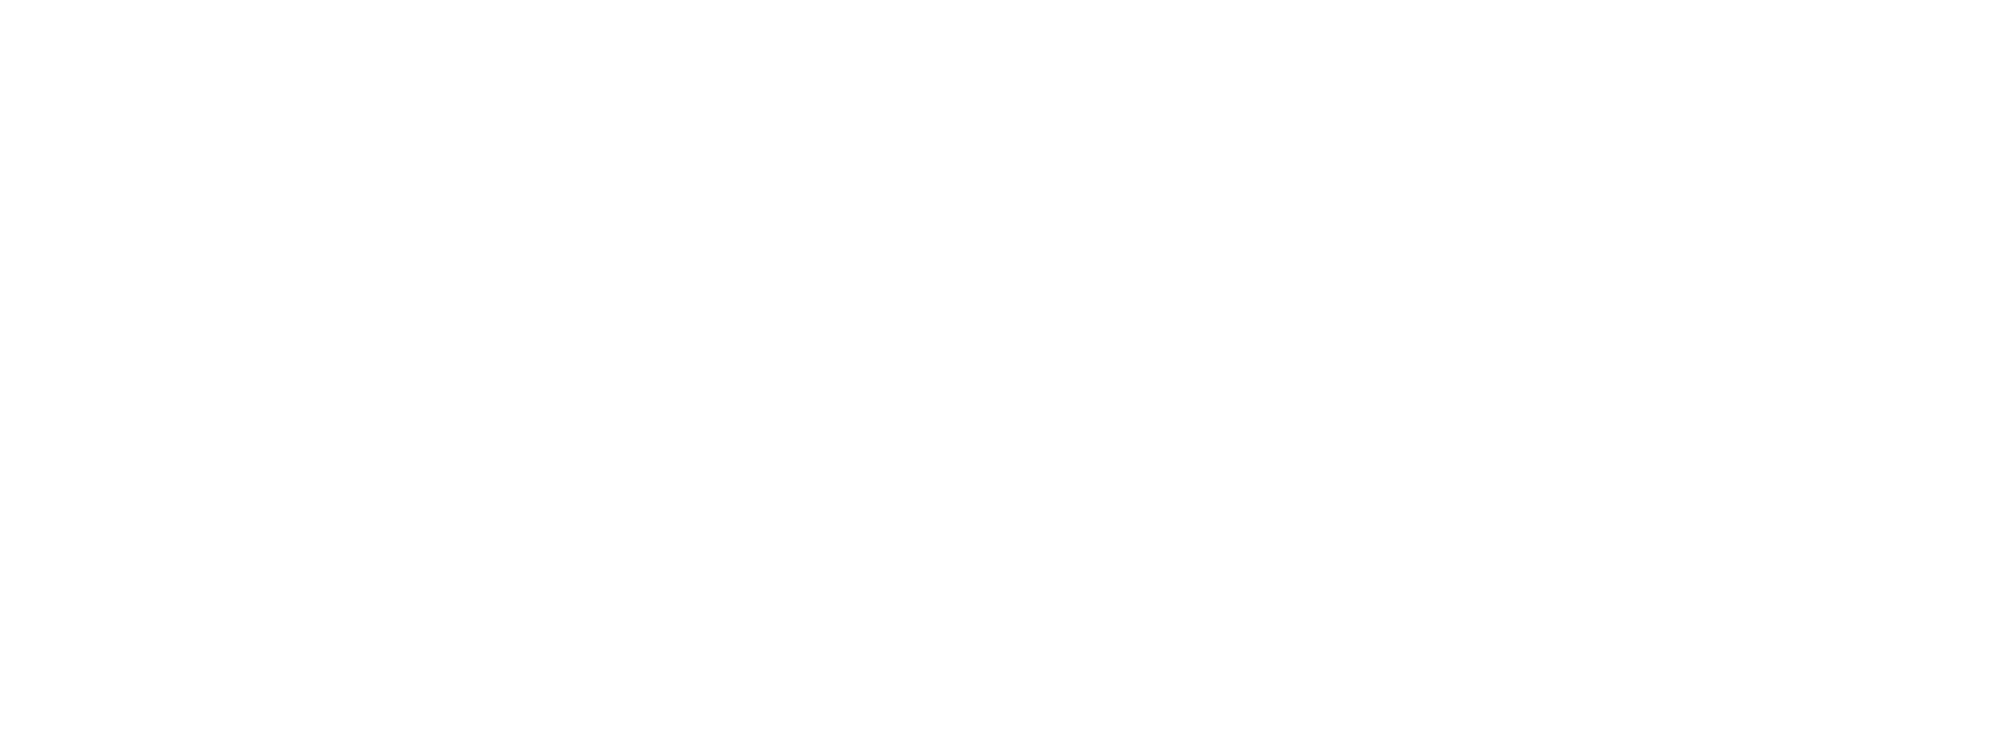 Universal music . Directed by DeeGee Media.